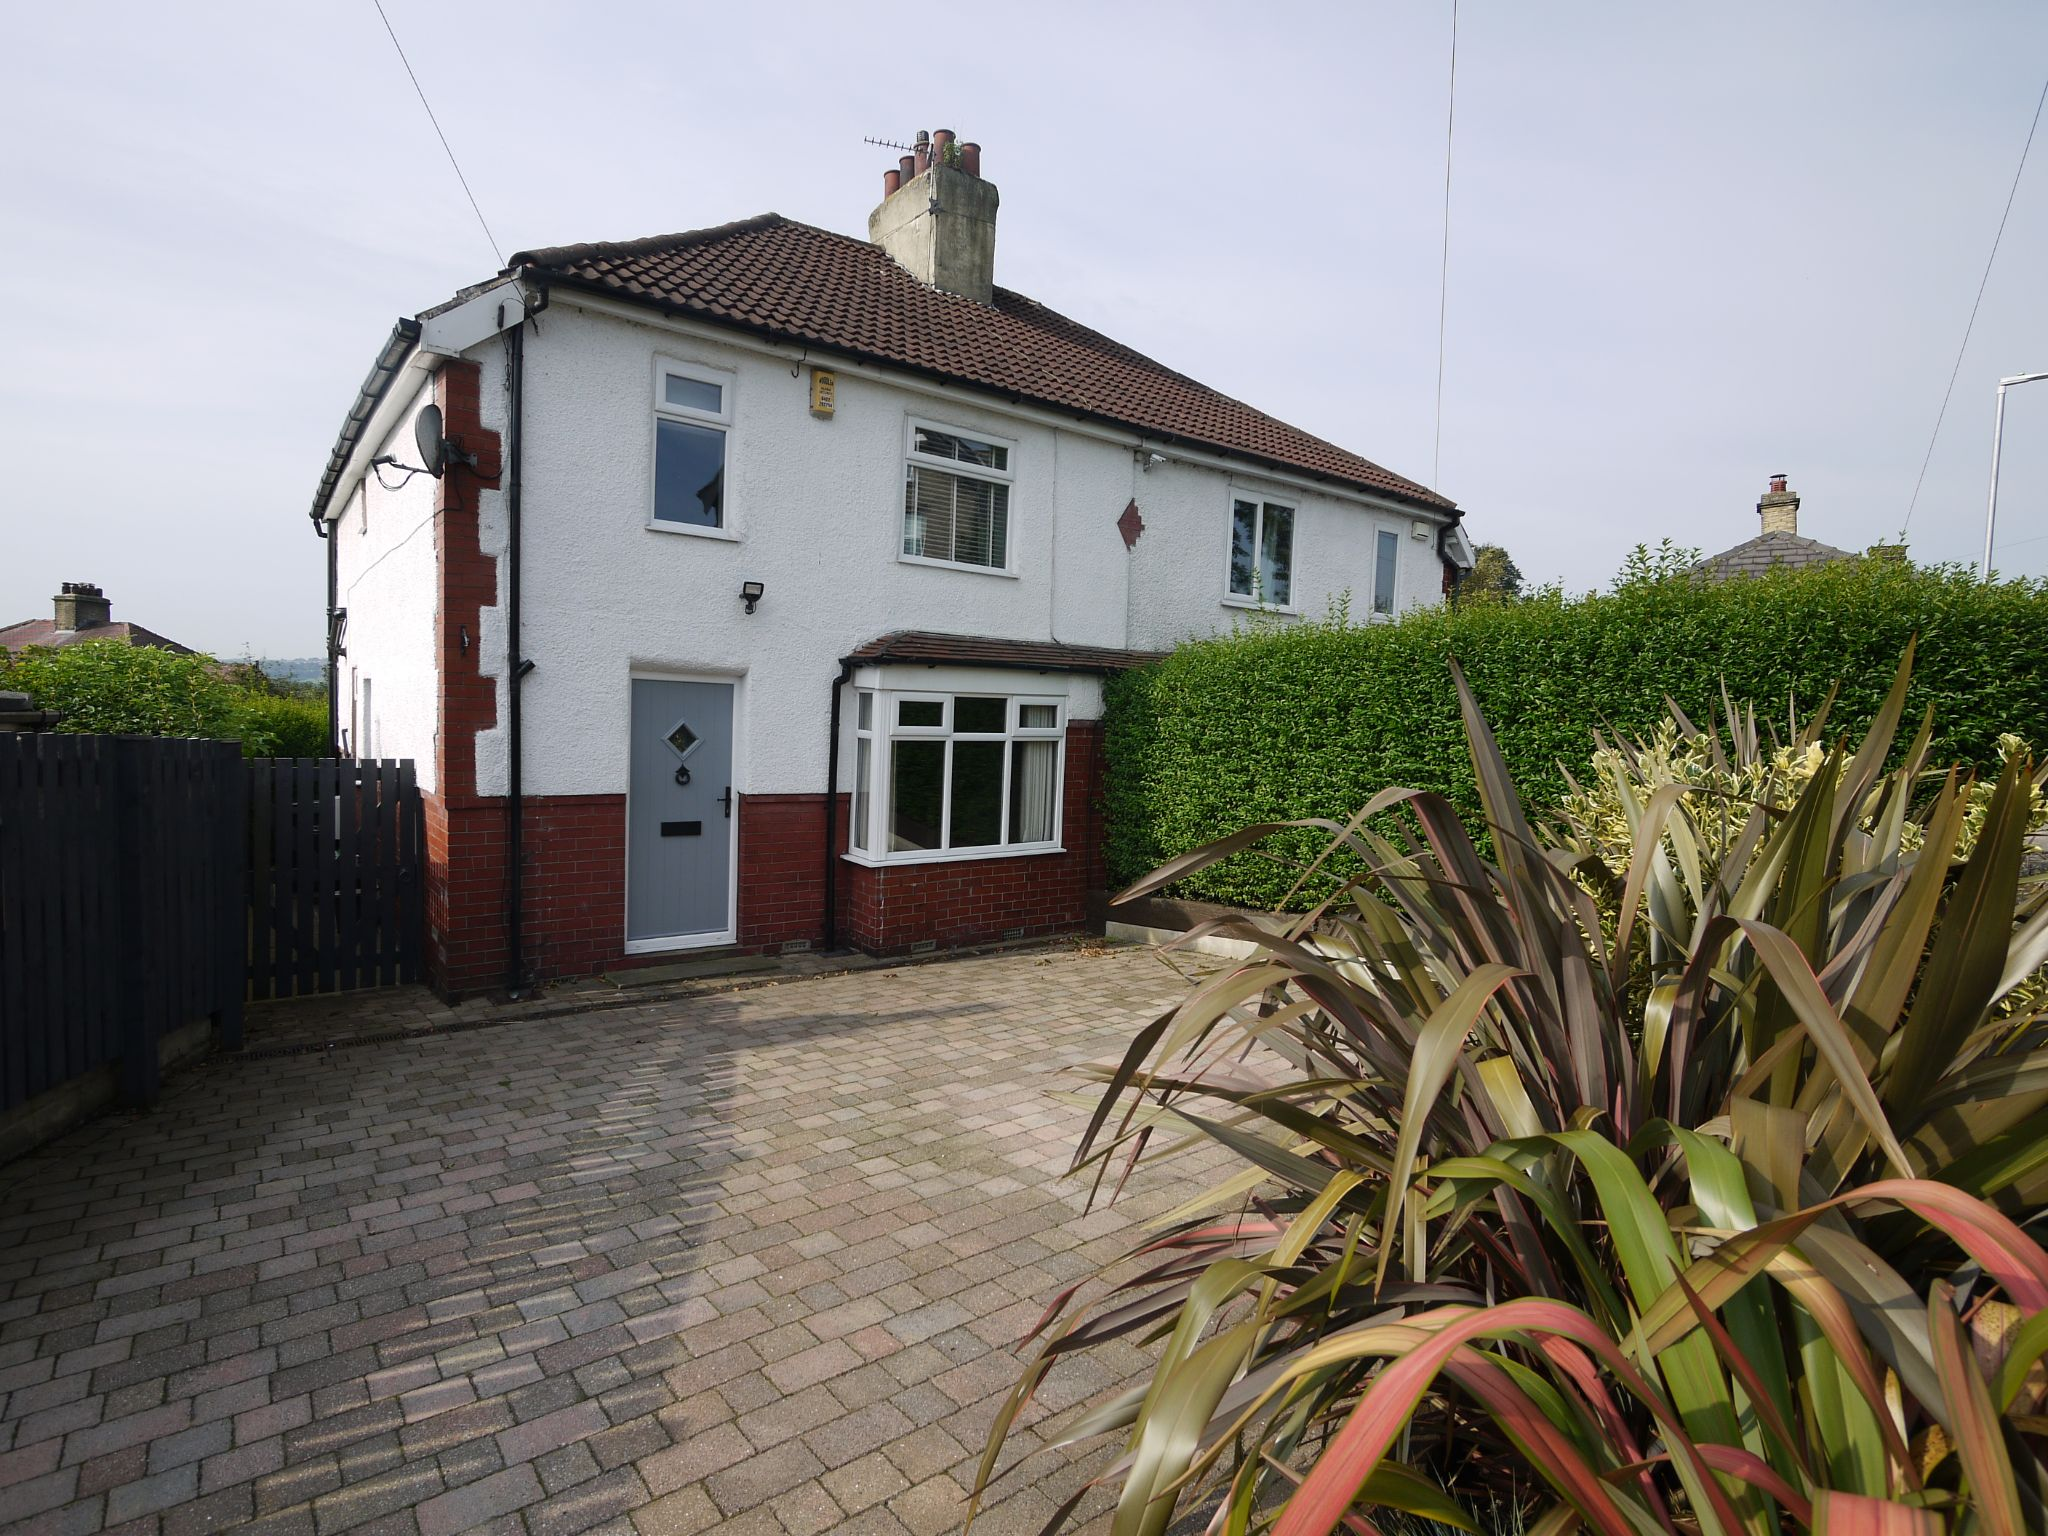 3 bedroom semi-detached house For Sale in Halifax - Photograph 1.